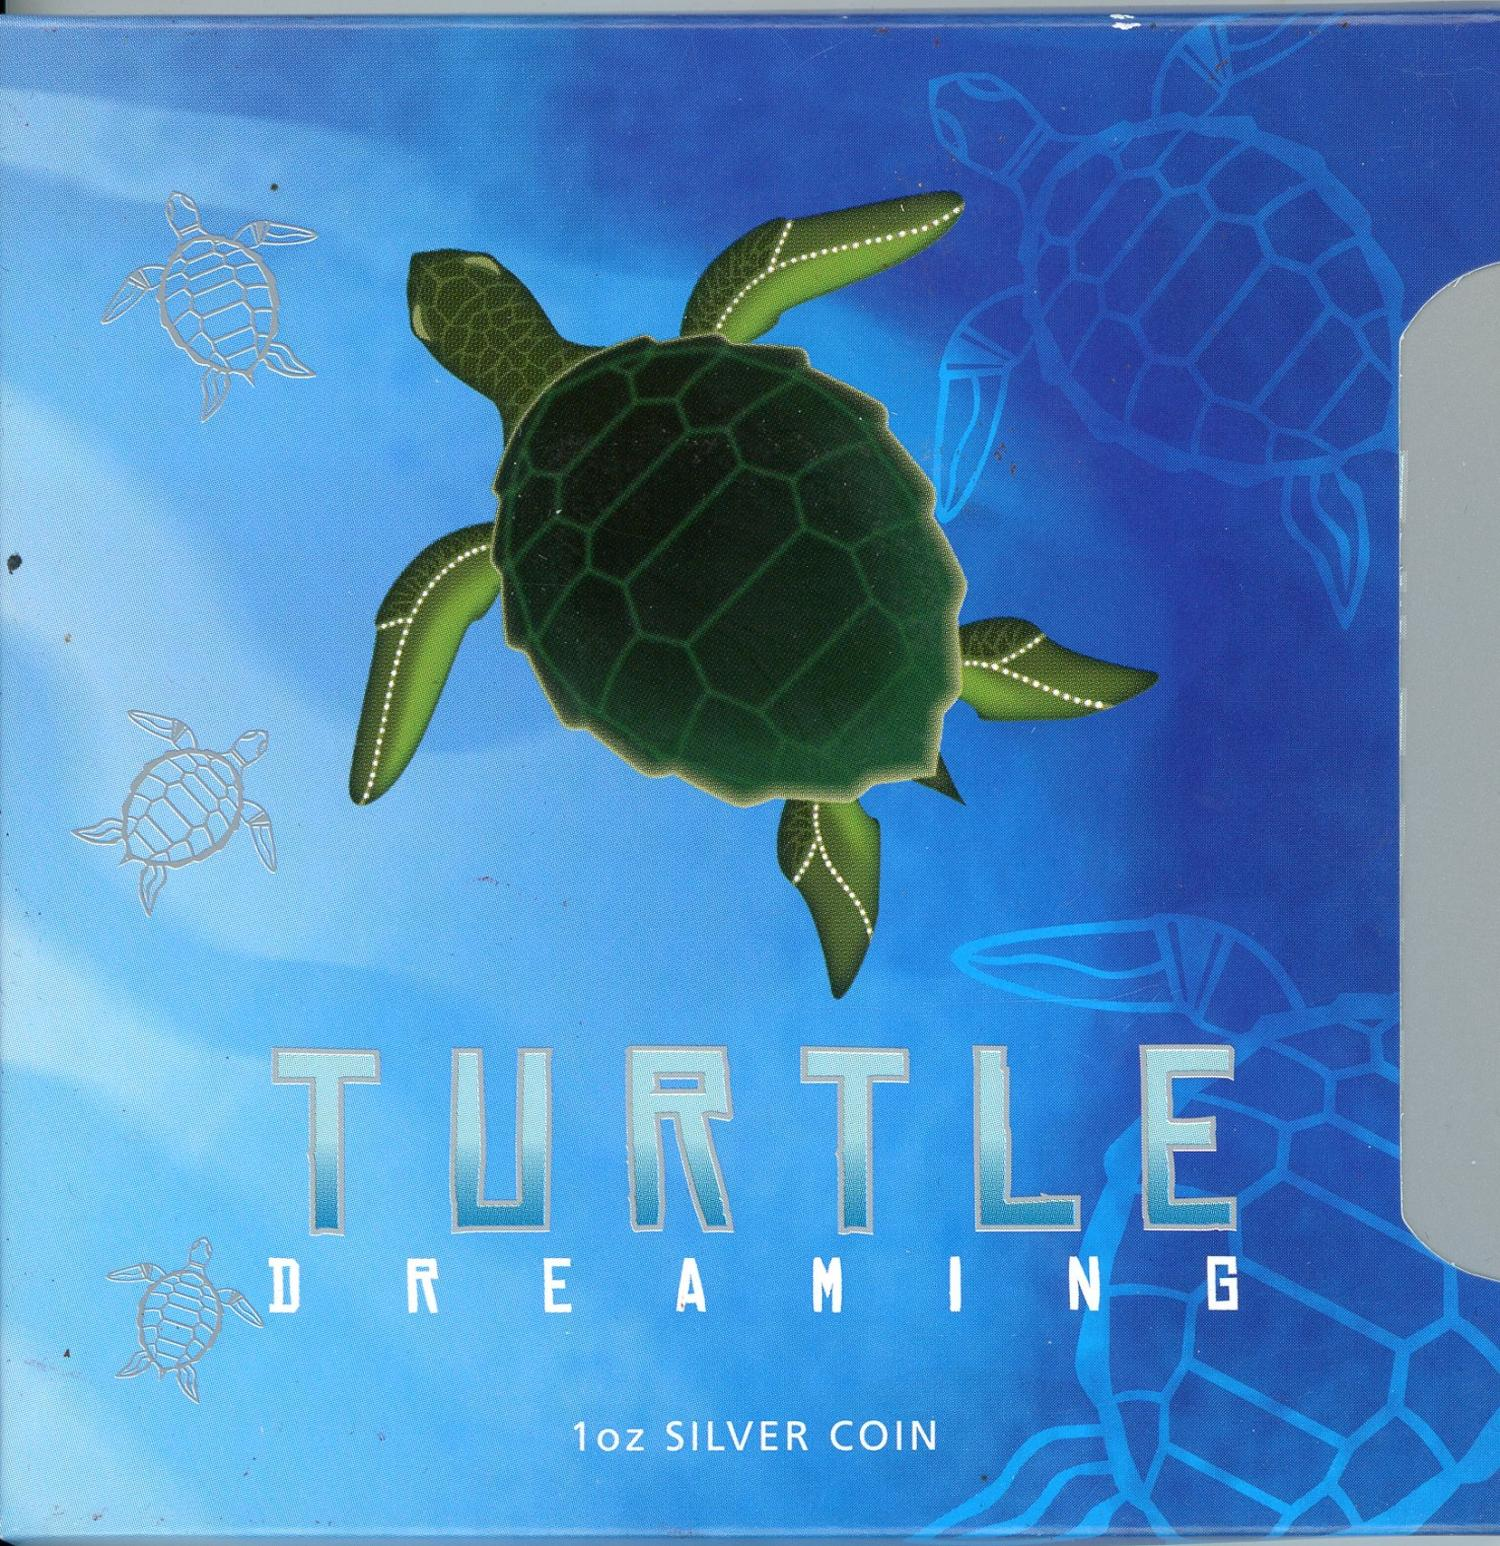 Thumbnail for 2008 1oz Silver Rectangle Coin - Turtle Dreaming